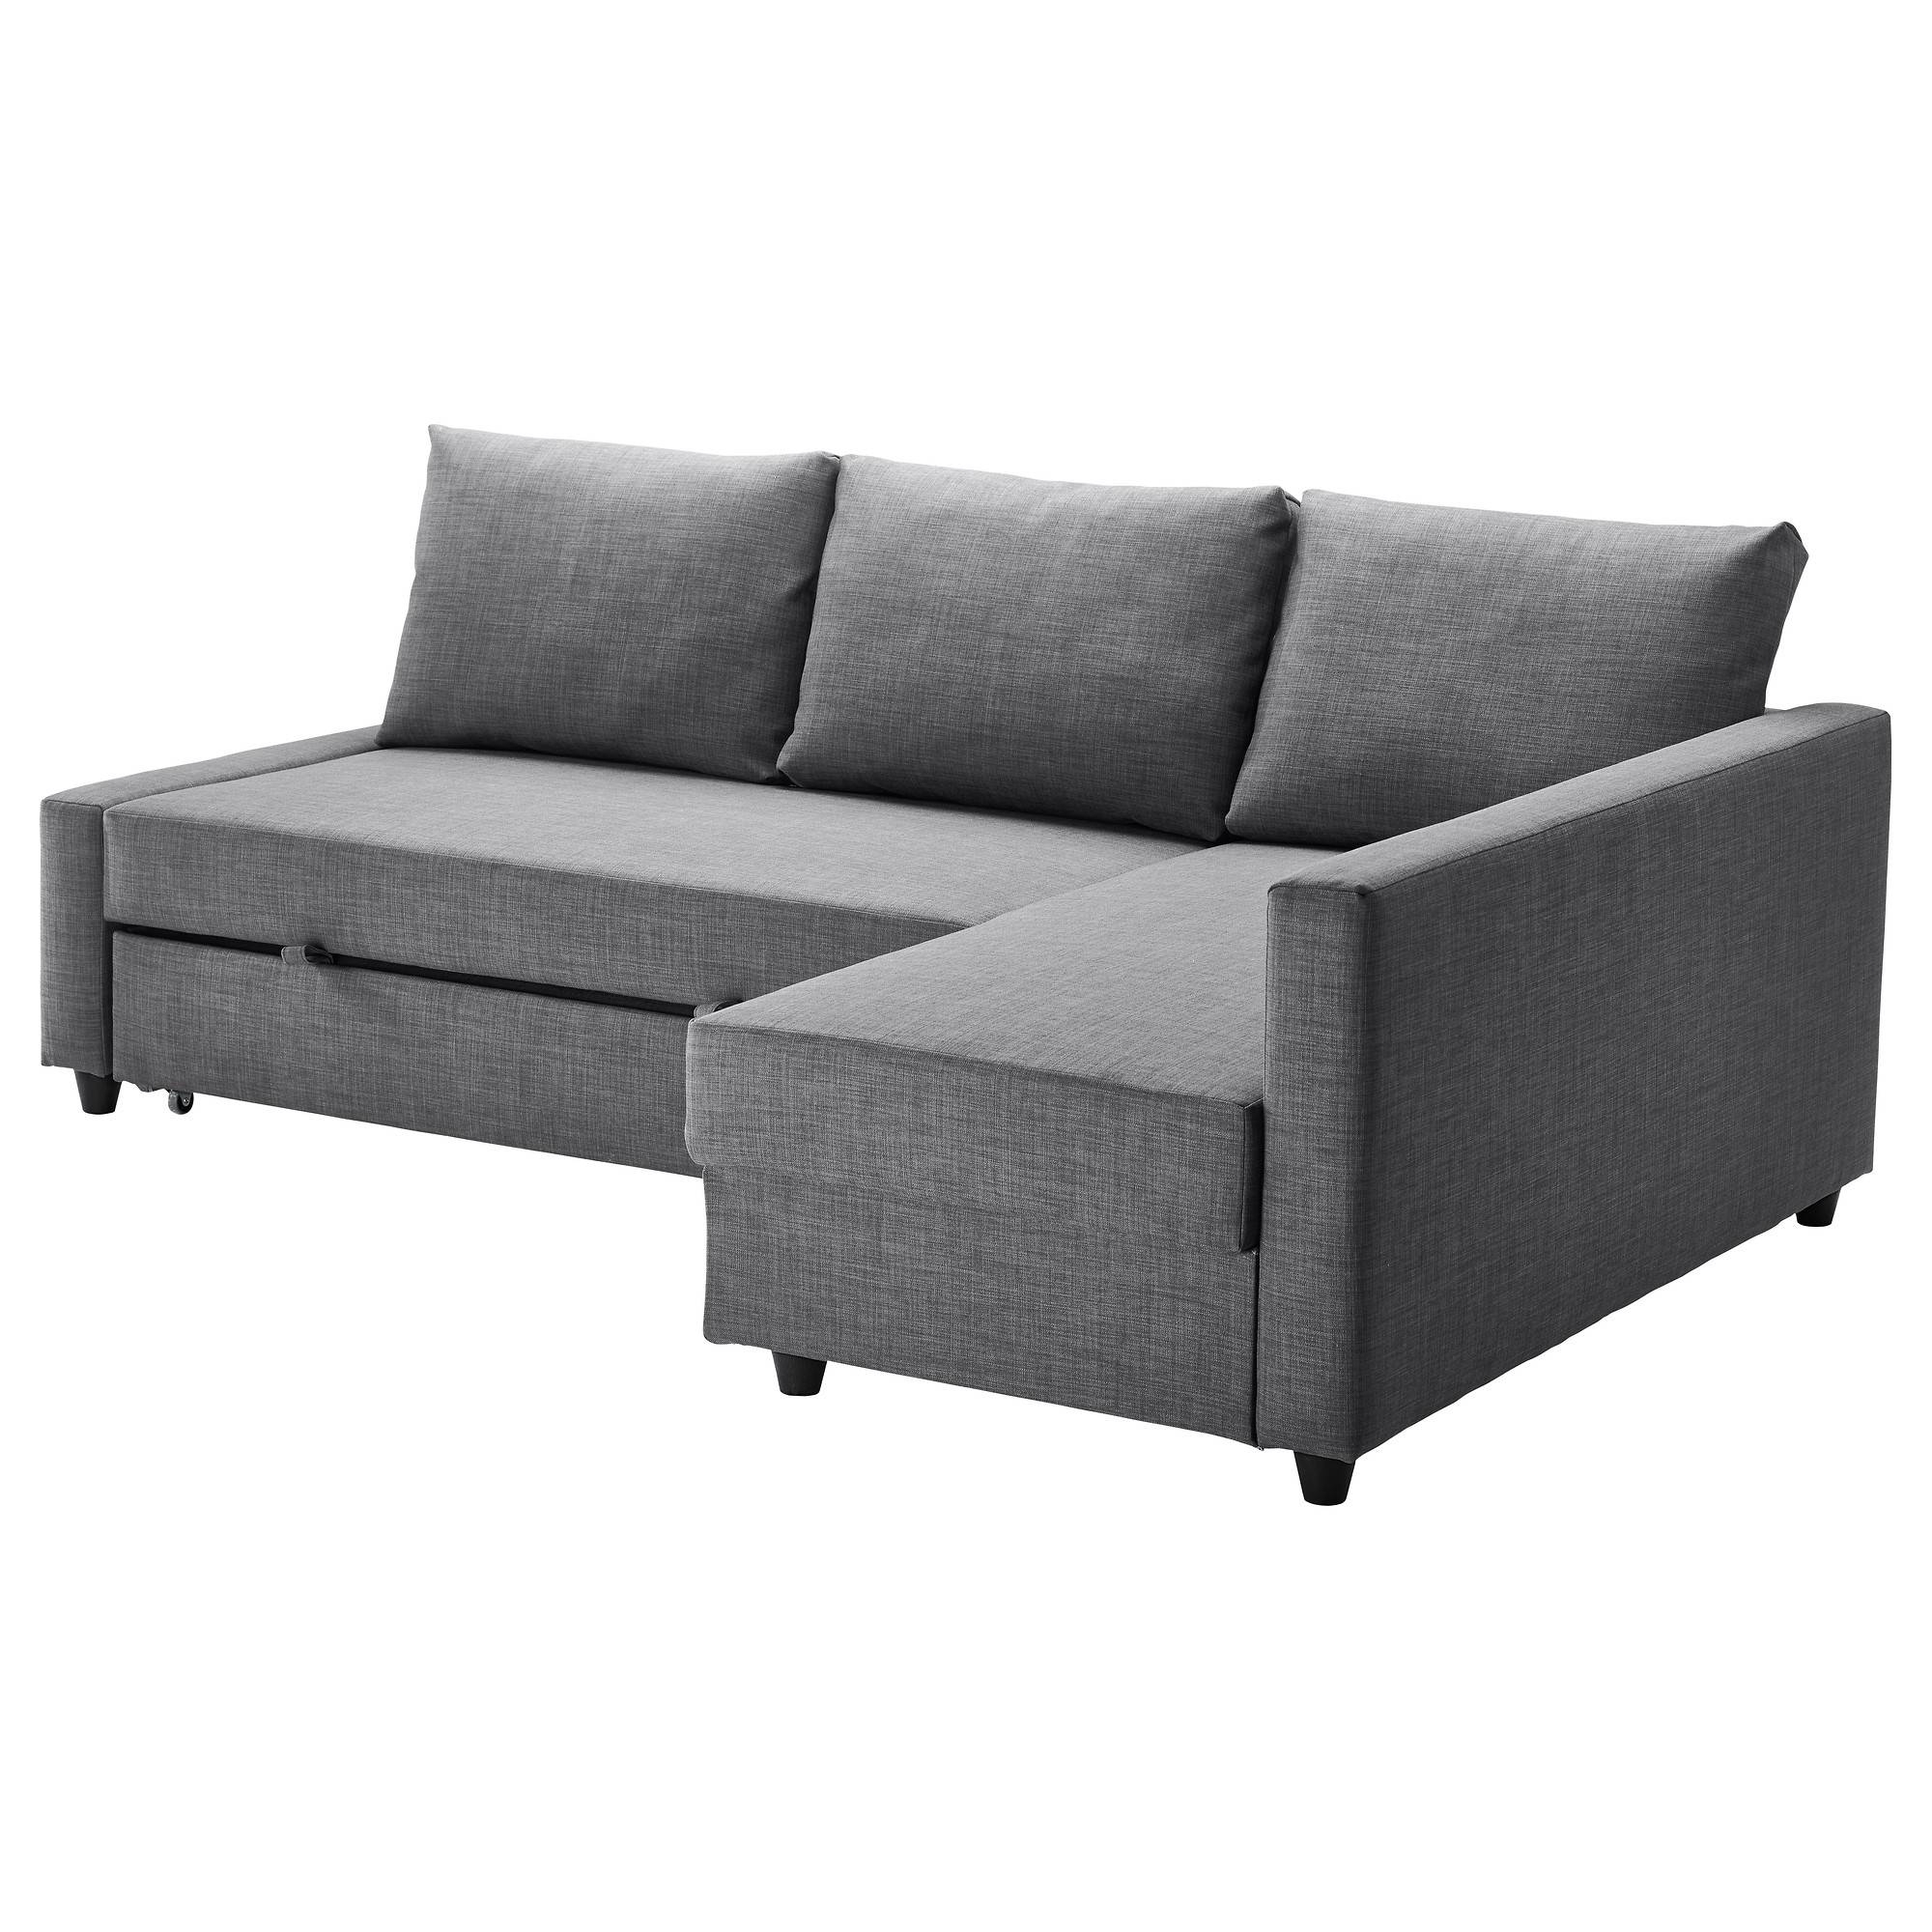 Sofa Beds & Futons – Ikea Inside Ikea Sectional Sleeper Sofa (View 20 of 25)